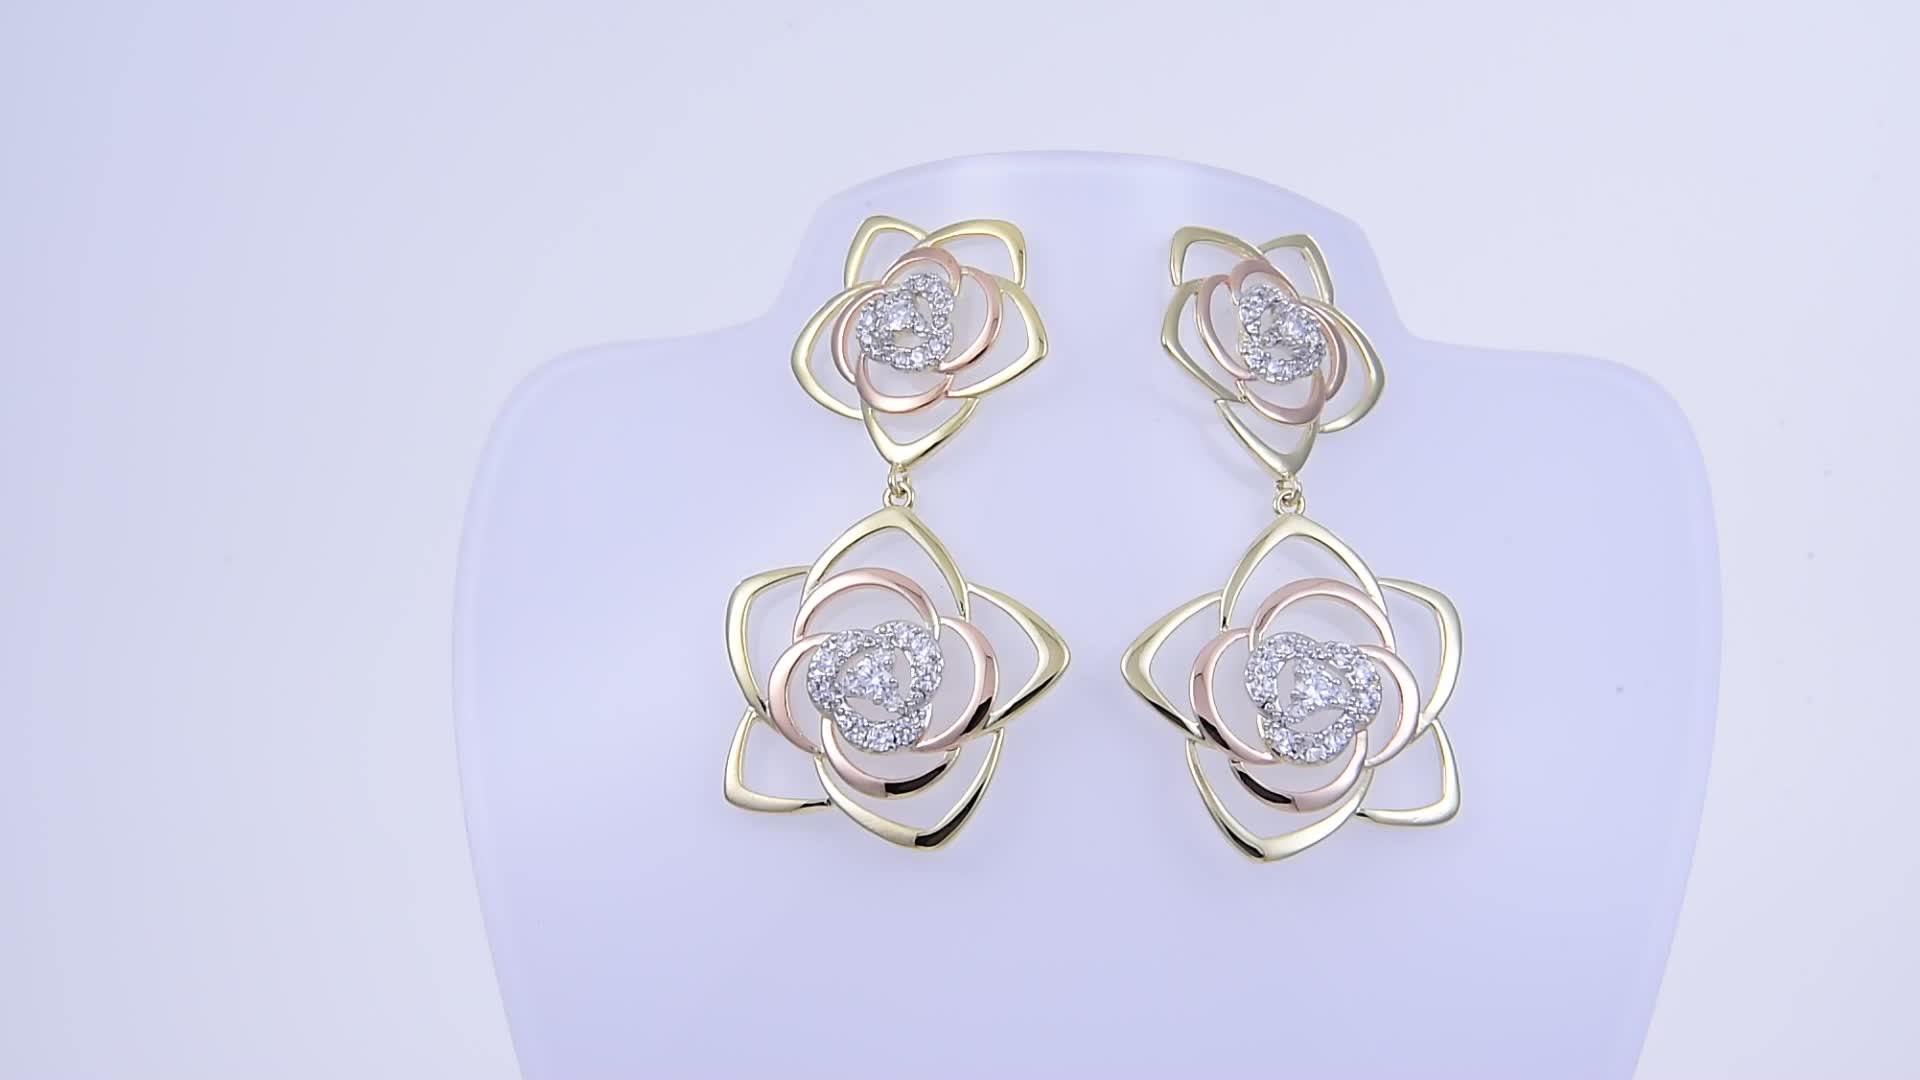 91115 Xuping jewelry fashion model earrings designs newest design double flower bridesmaid earrings